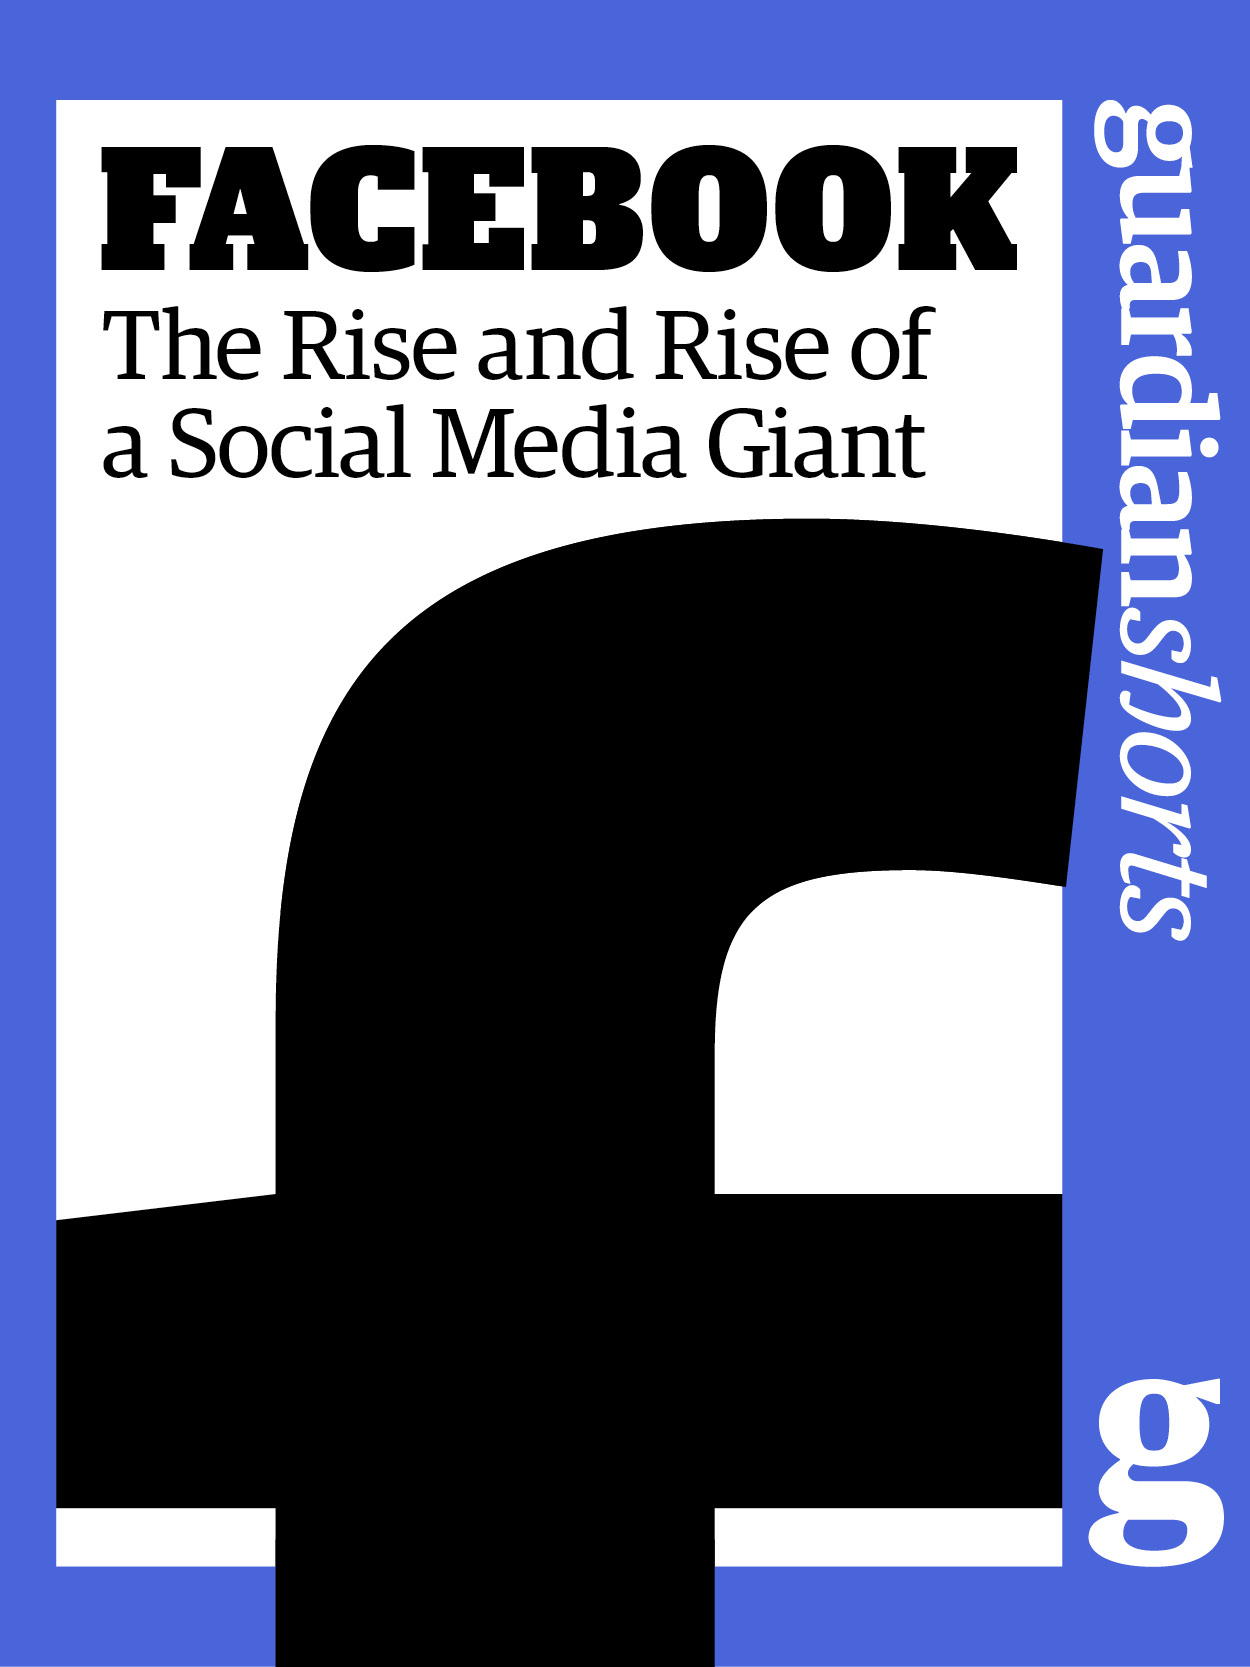 Facebook The Rise and Rise of a Social Media Giant